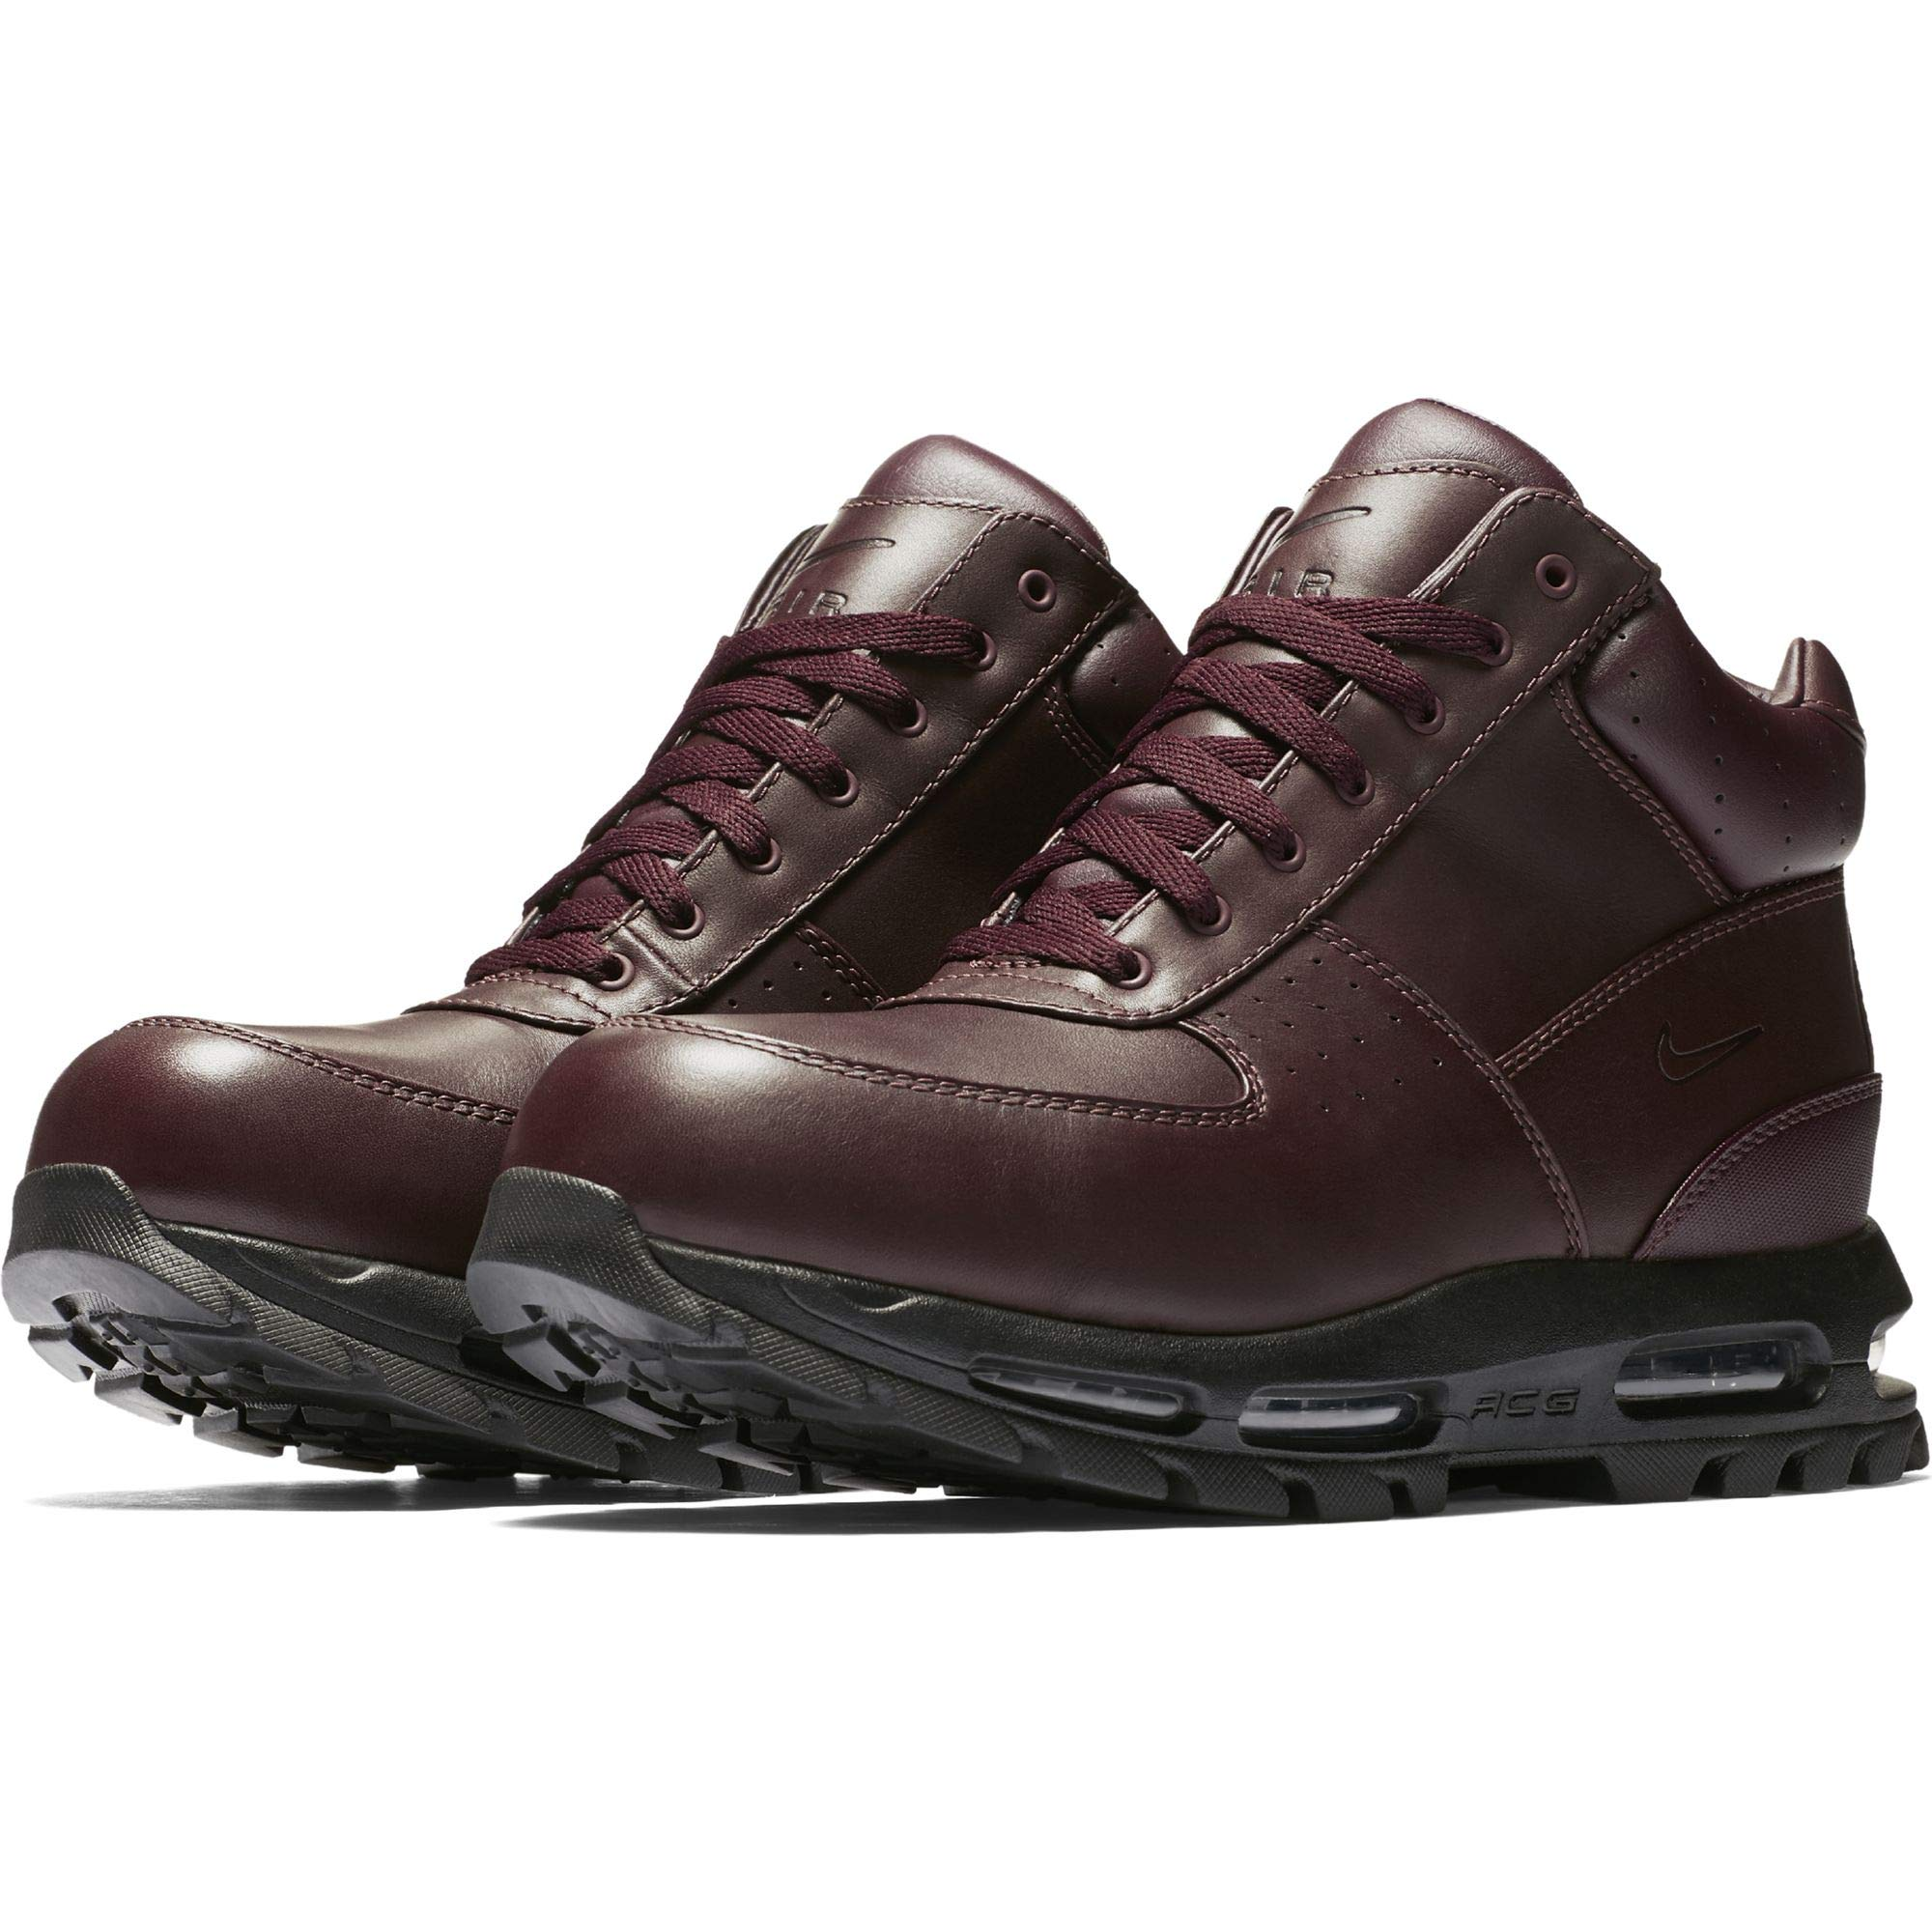 huge selection of 8f19c d5ef2 Galleon - Nike Mens Air Max Goadome ACG Boots Deep Burgundy Black  865031-601 Size 9.5